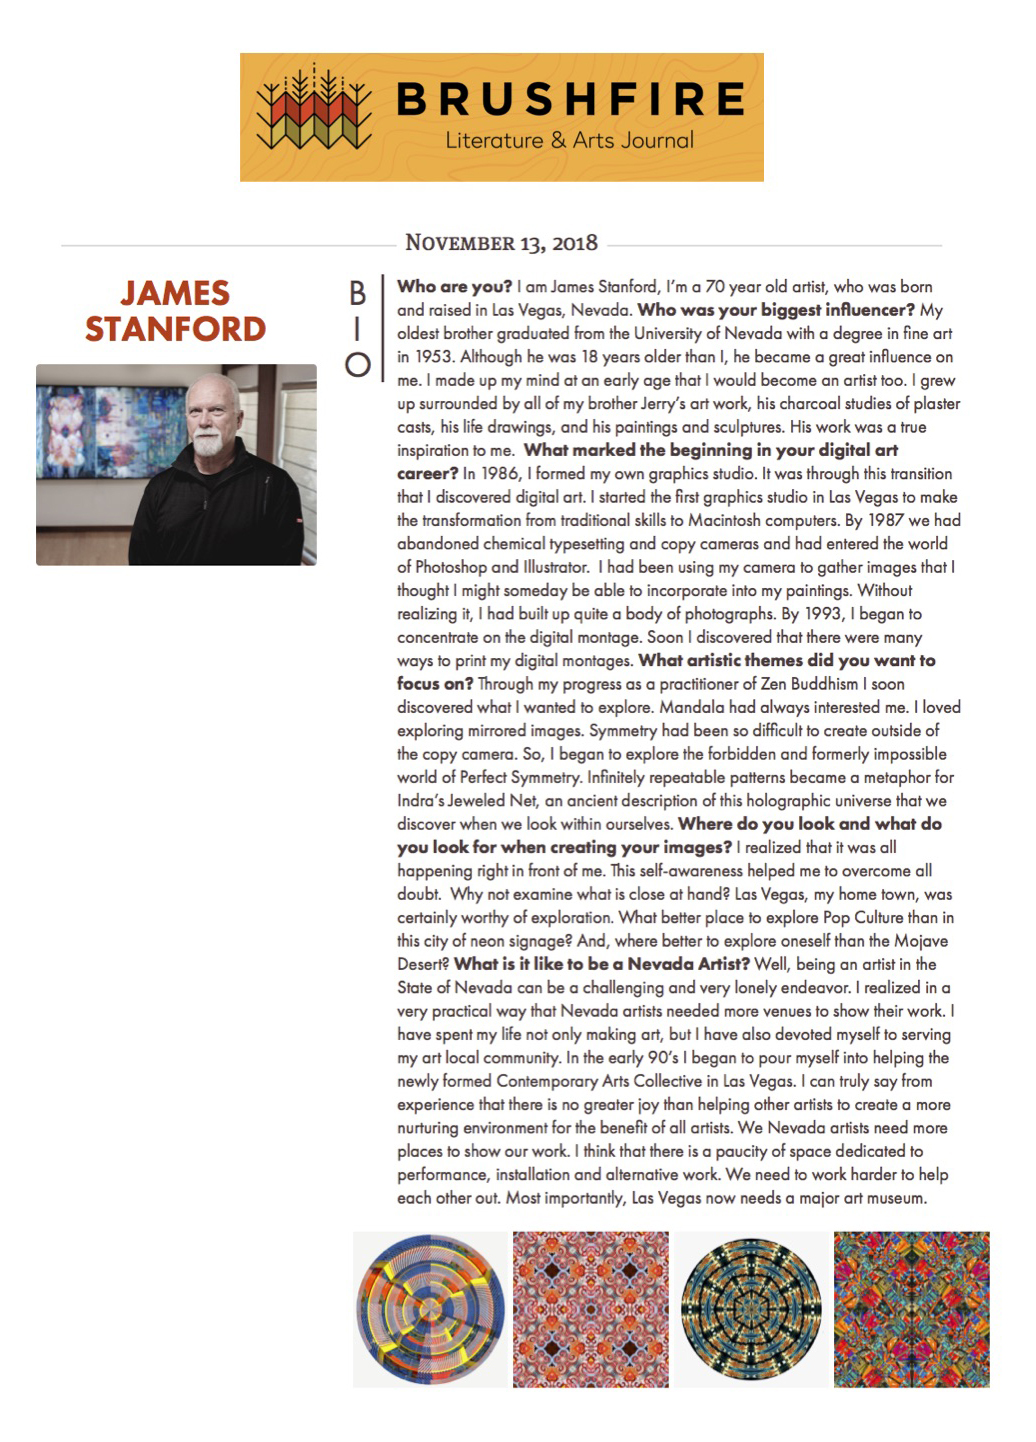 James Stanford Brushfire Literature & Arts Journal (Artist Spotlight) November 2018.jpg